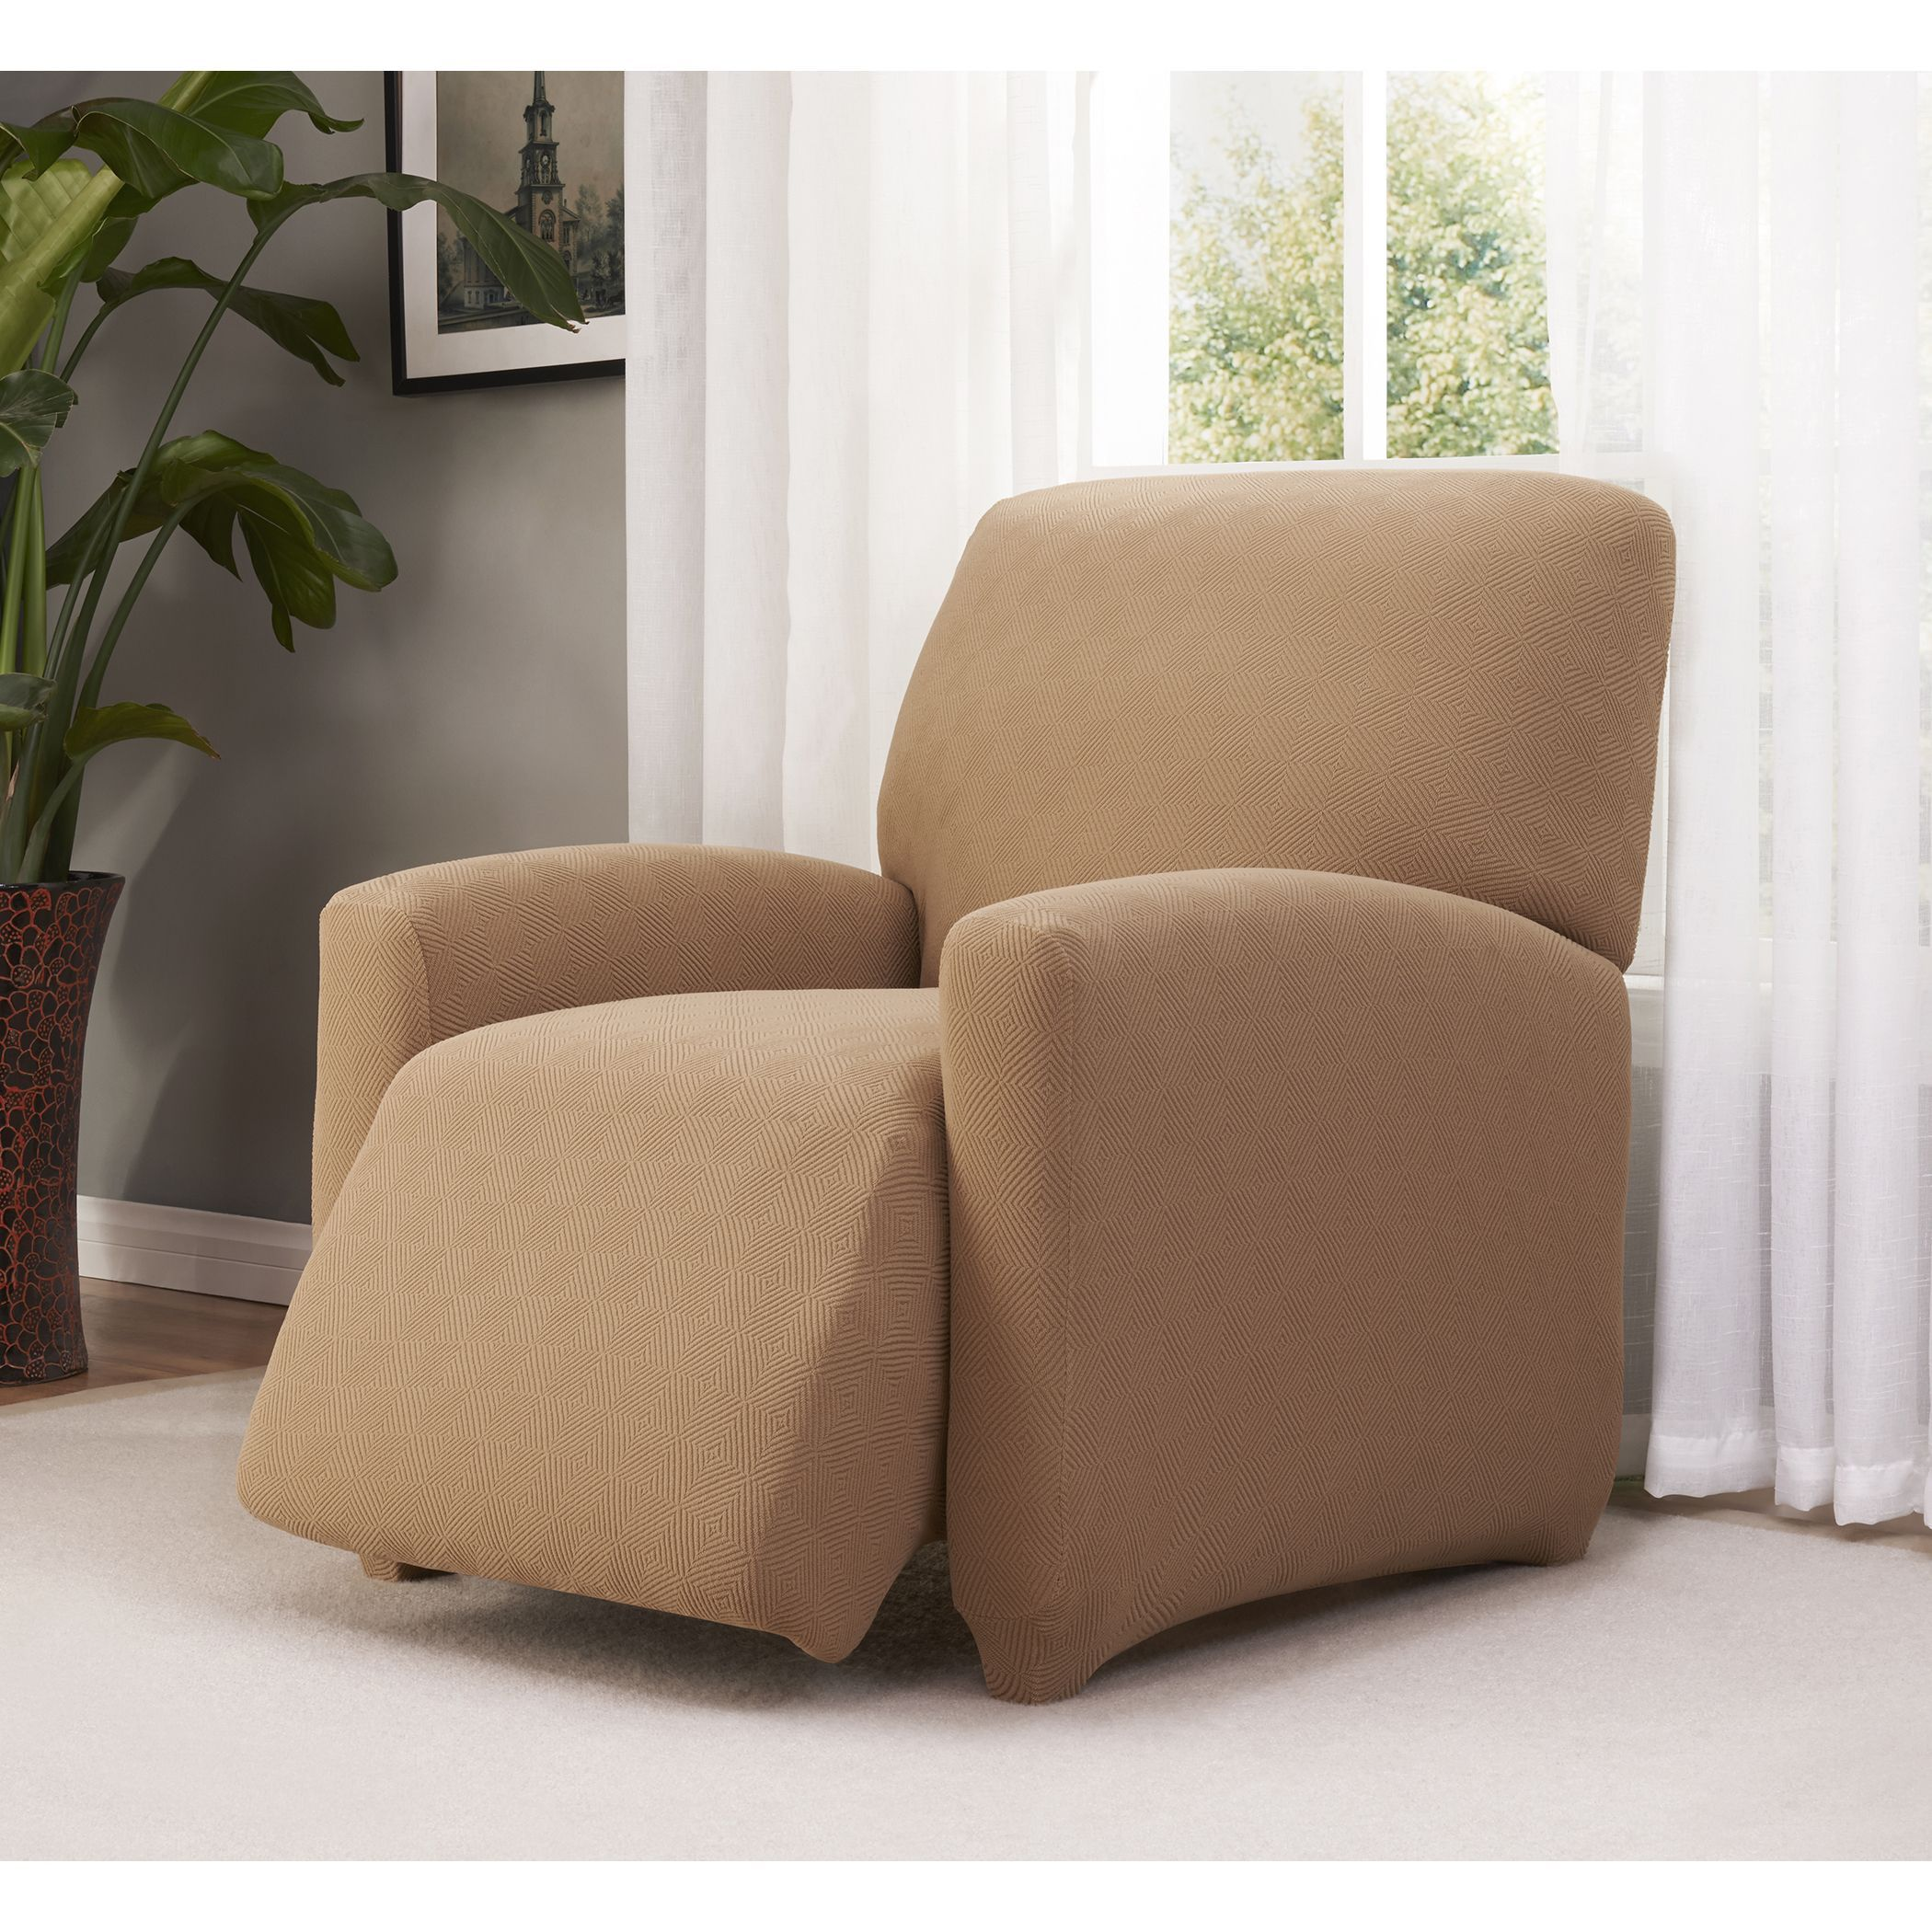 d a furniture for s removable n i slipcovers cover y slipcover g to slip how e sew recliners